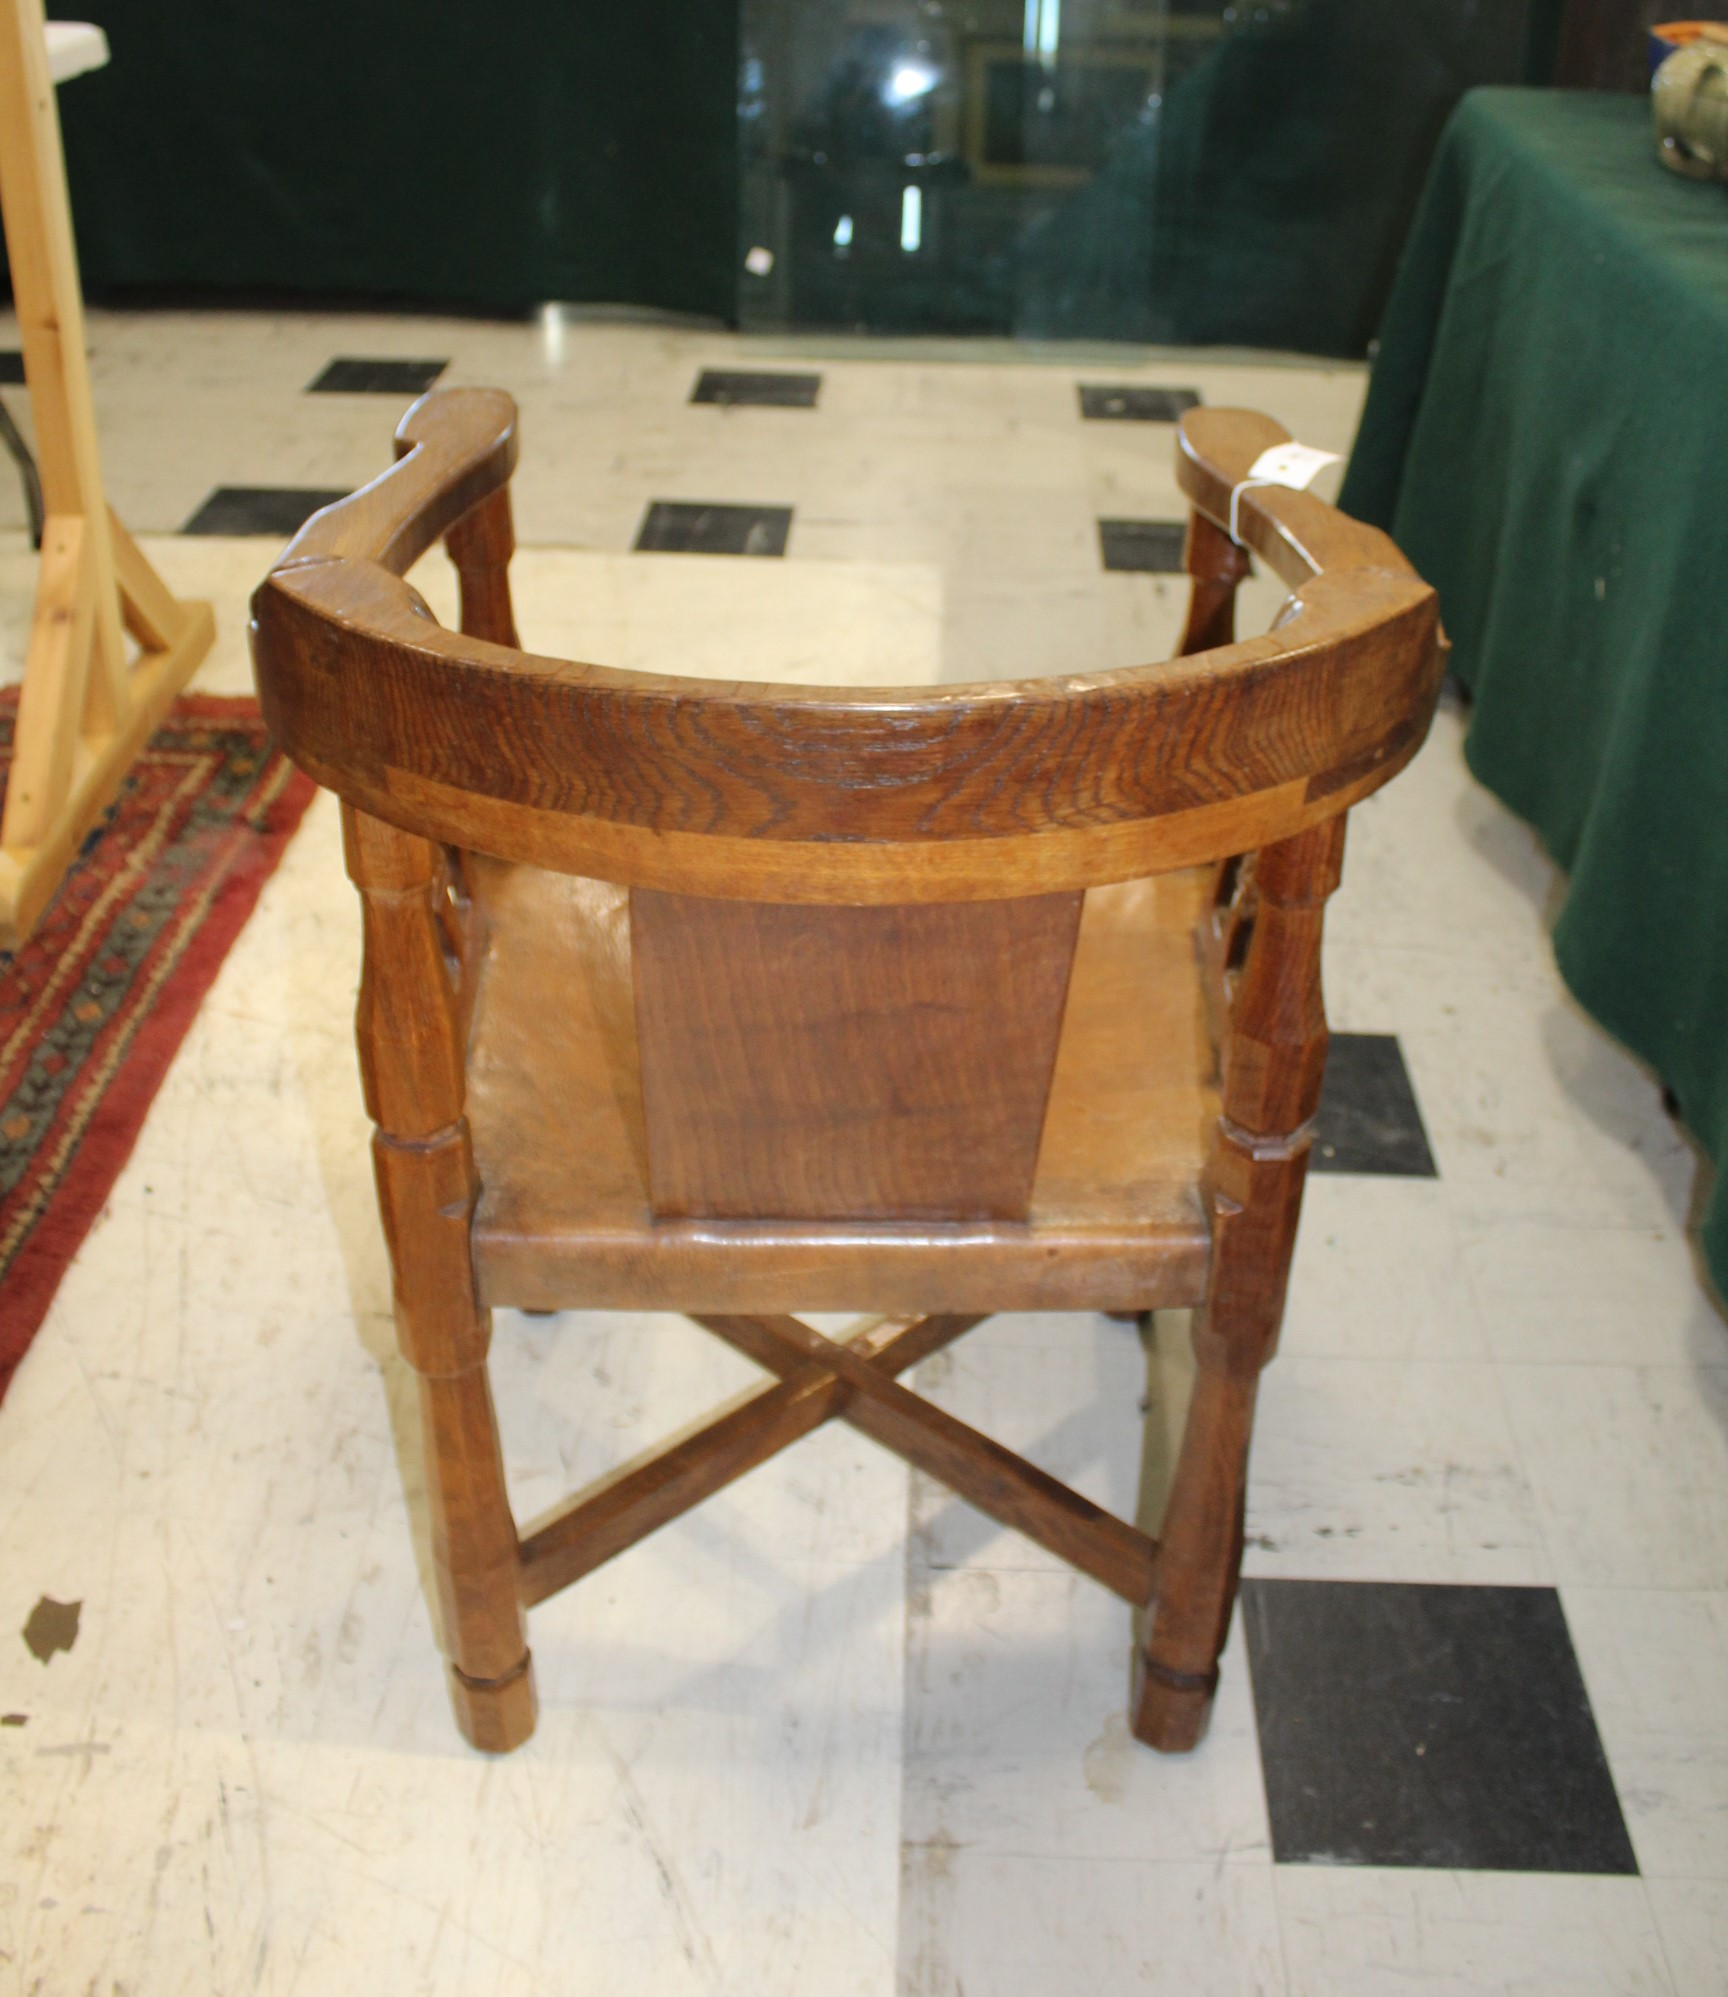 ROBERT THOMPSON OF KILBURN - MOUSEMAN MONKS CHAIR a circa 1920s/1930s oak Monk's armchair with a - Image 8 of 27